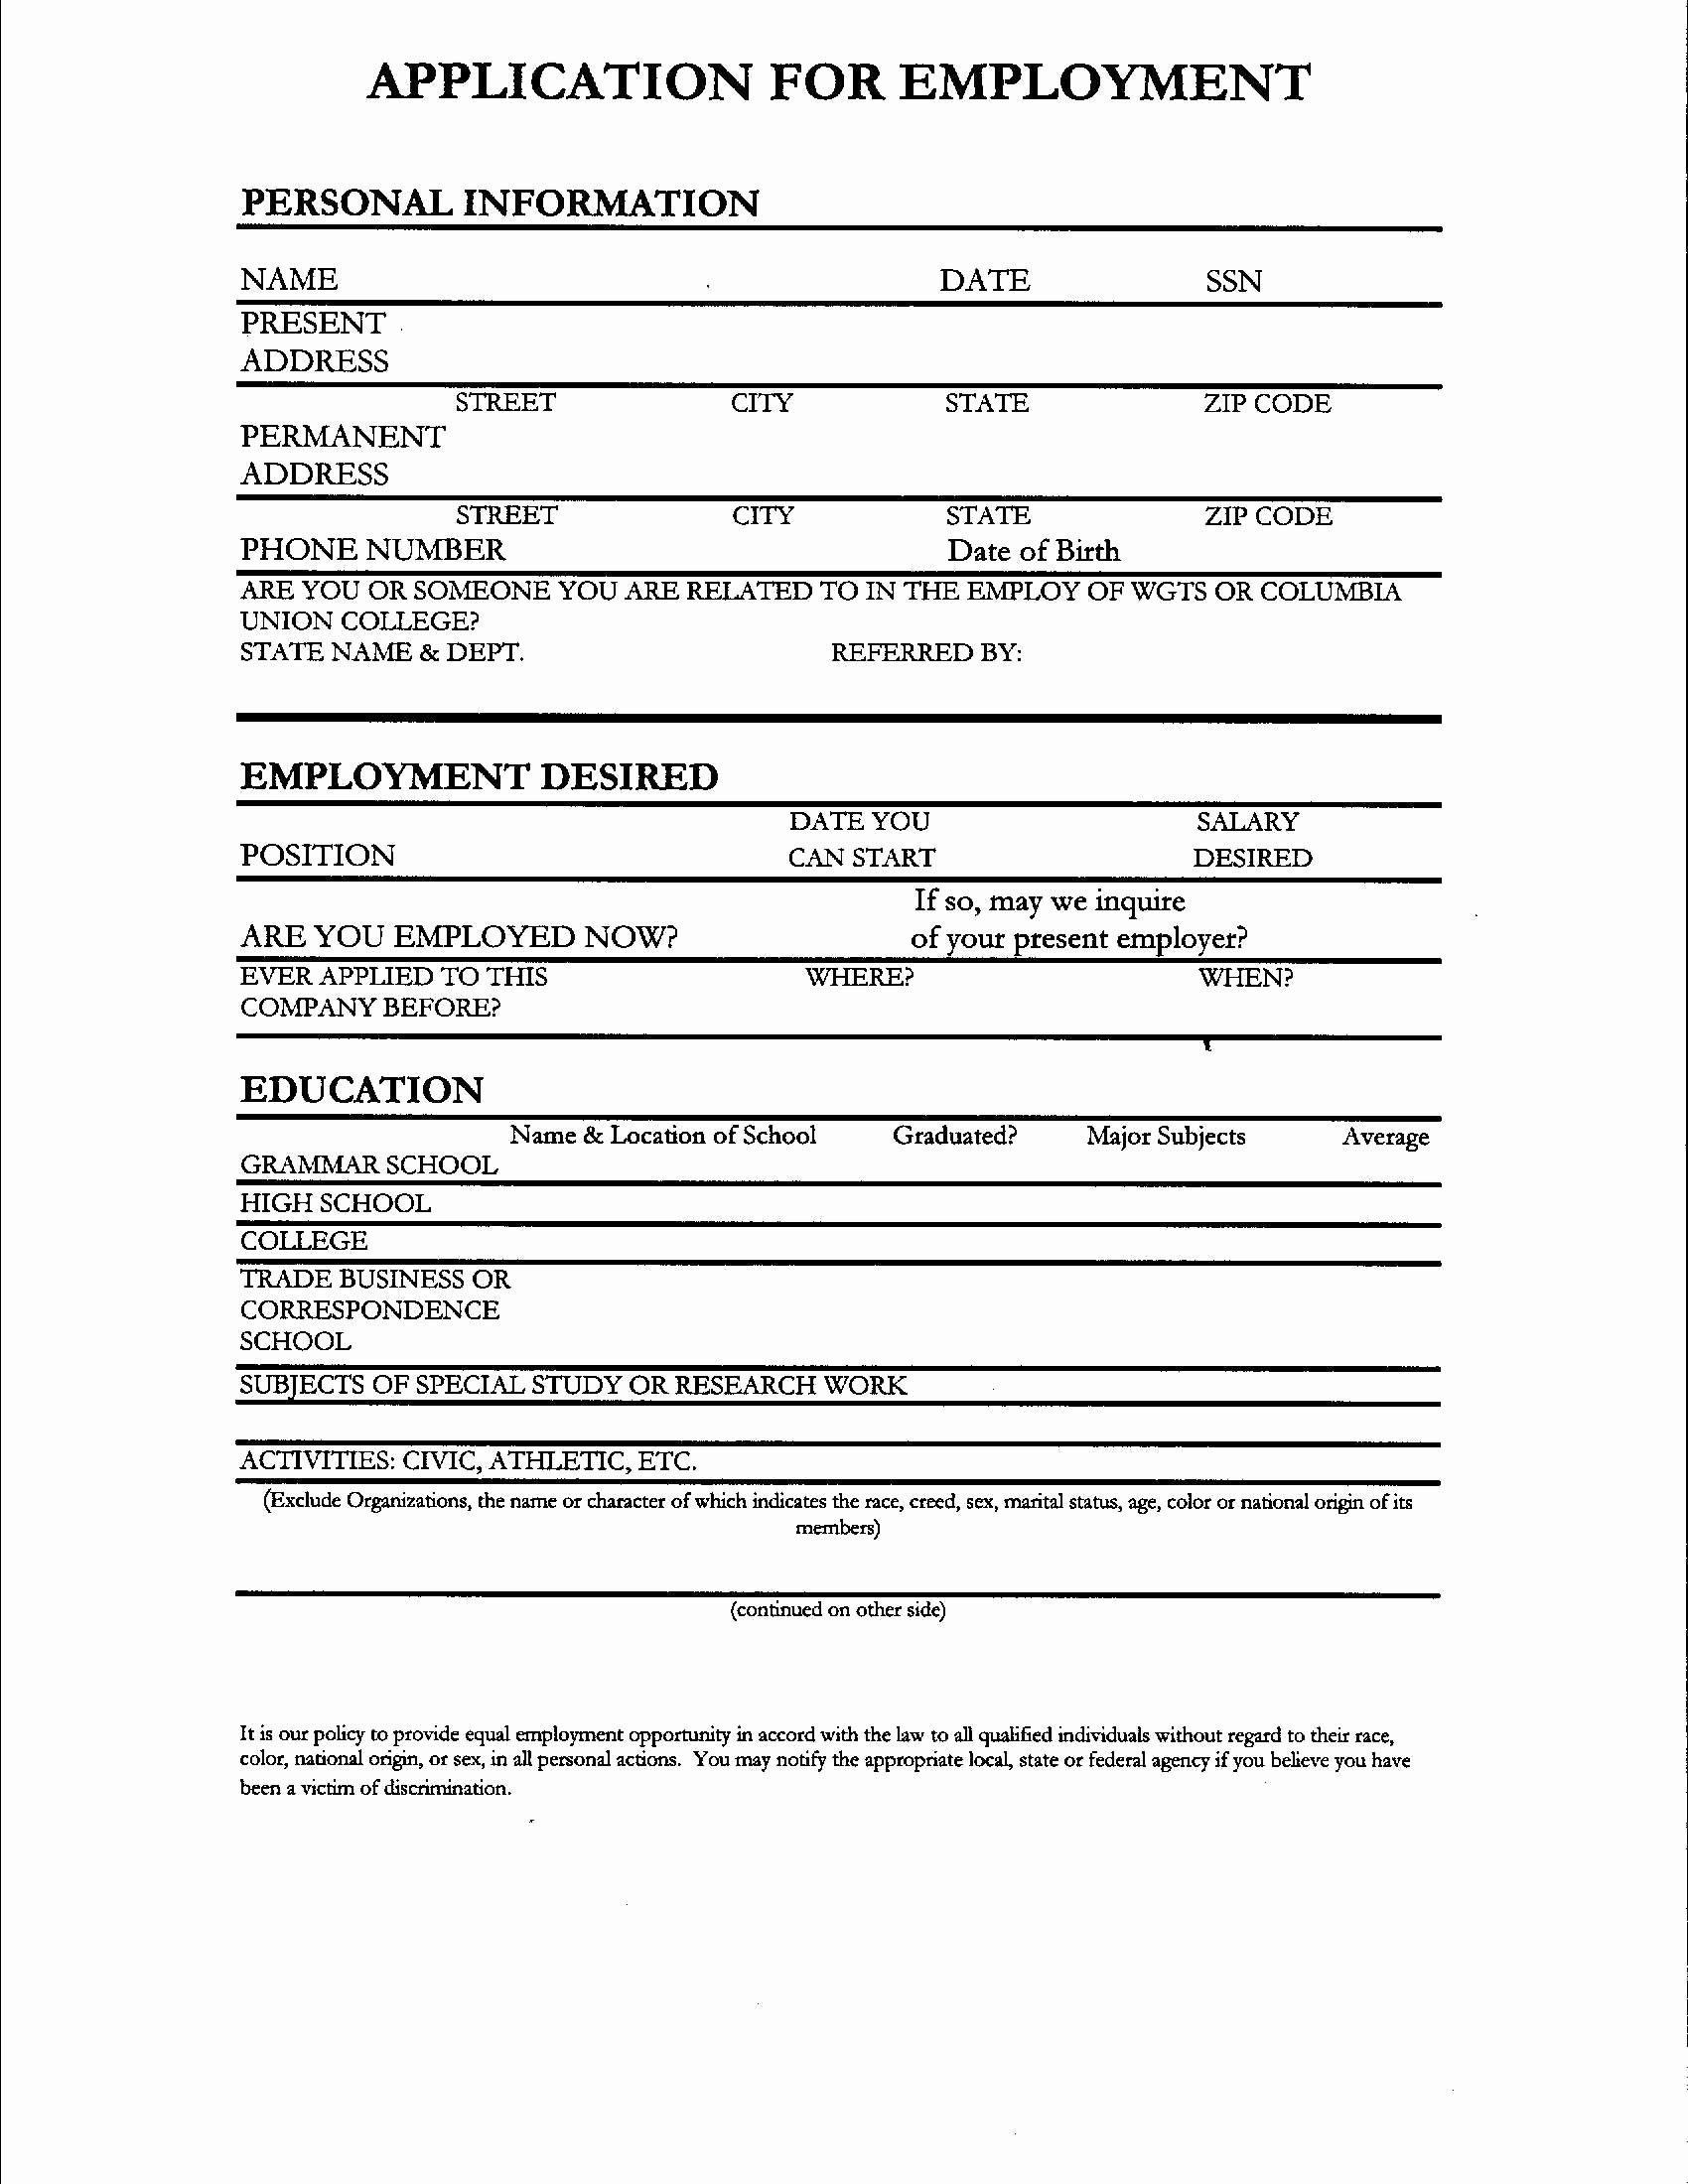 Resume forms to Fill Out Talktomartyb